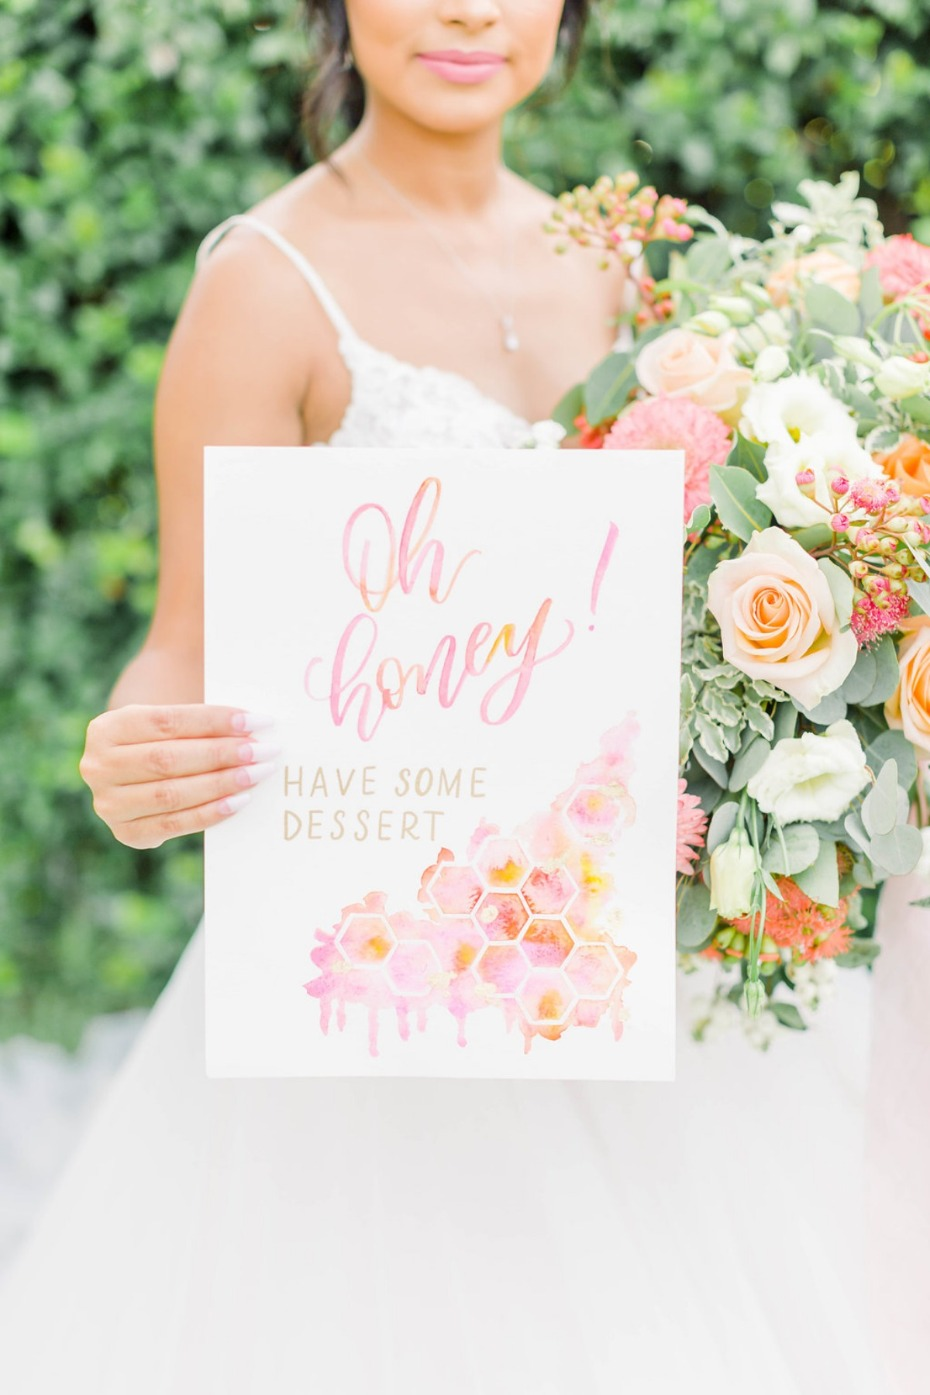 Oh honey! wedding dessert sign